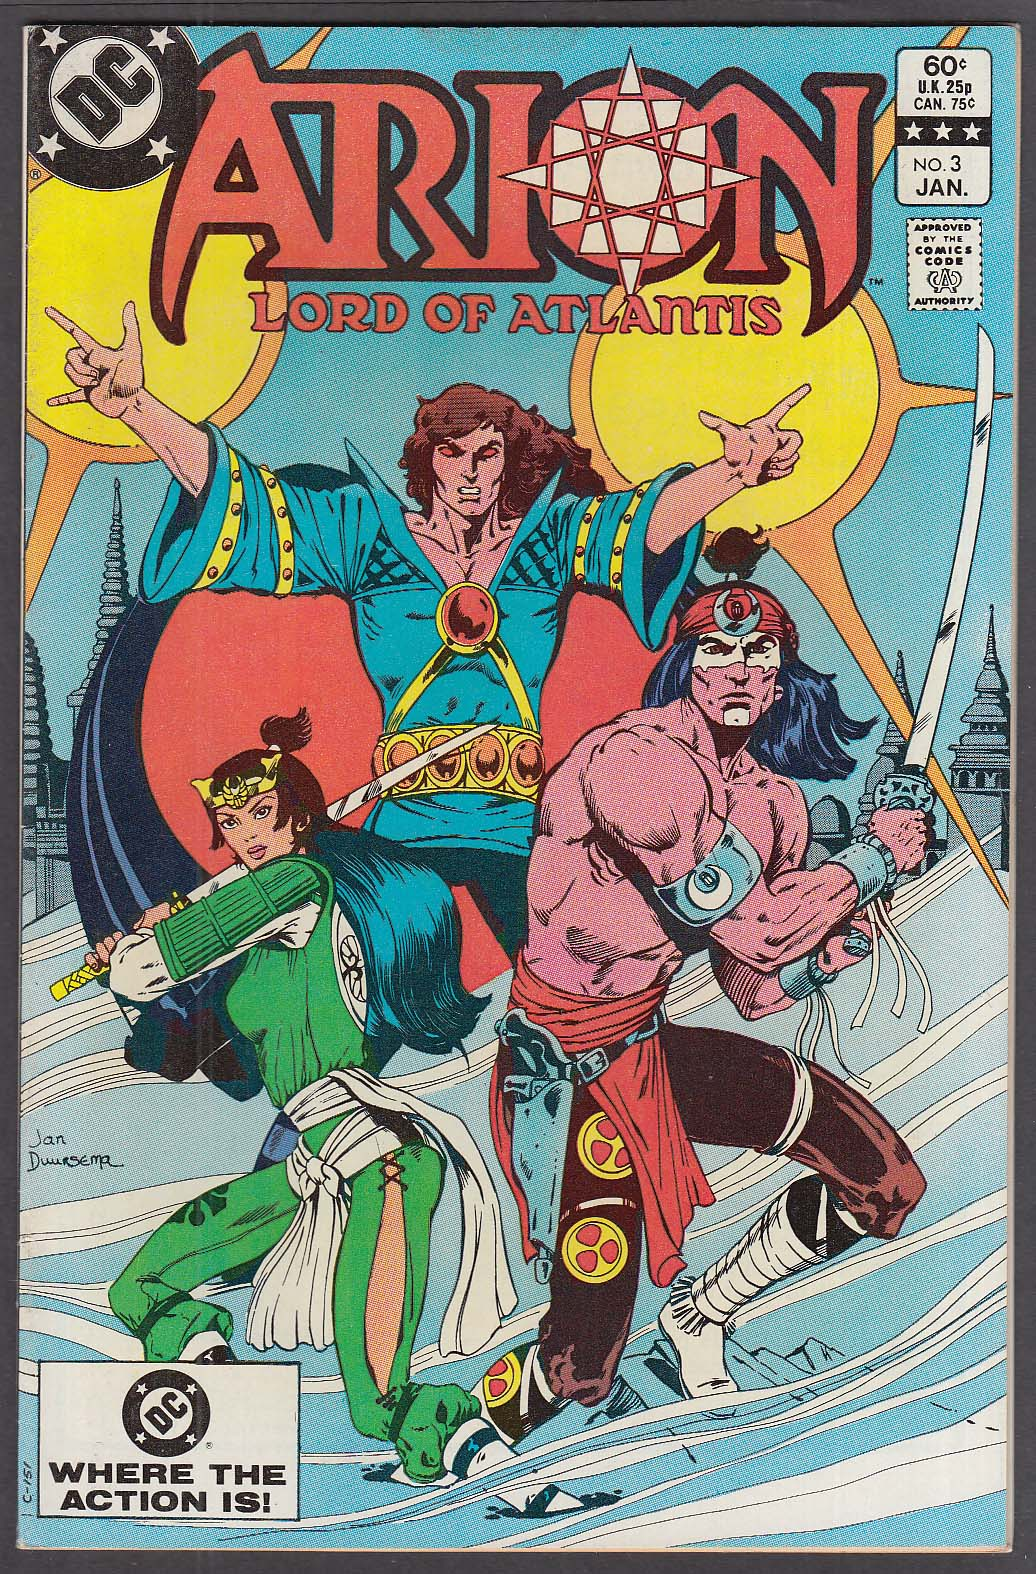 ARION Lord of Atlantis #3 DC comic book 1 1983